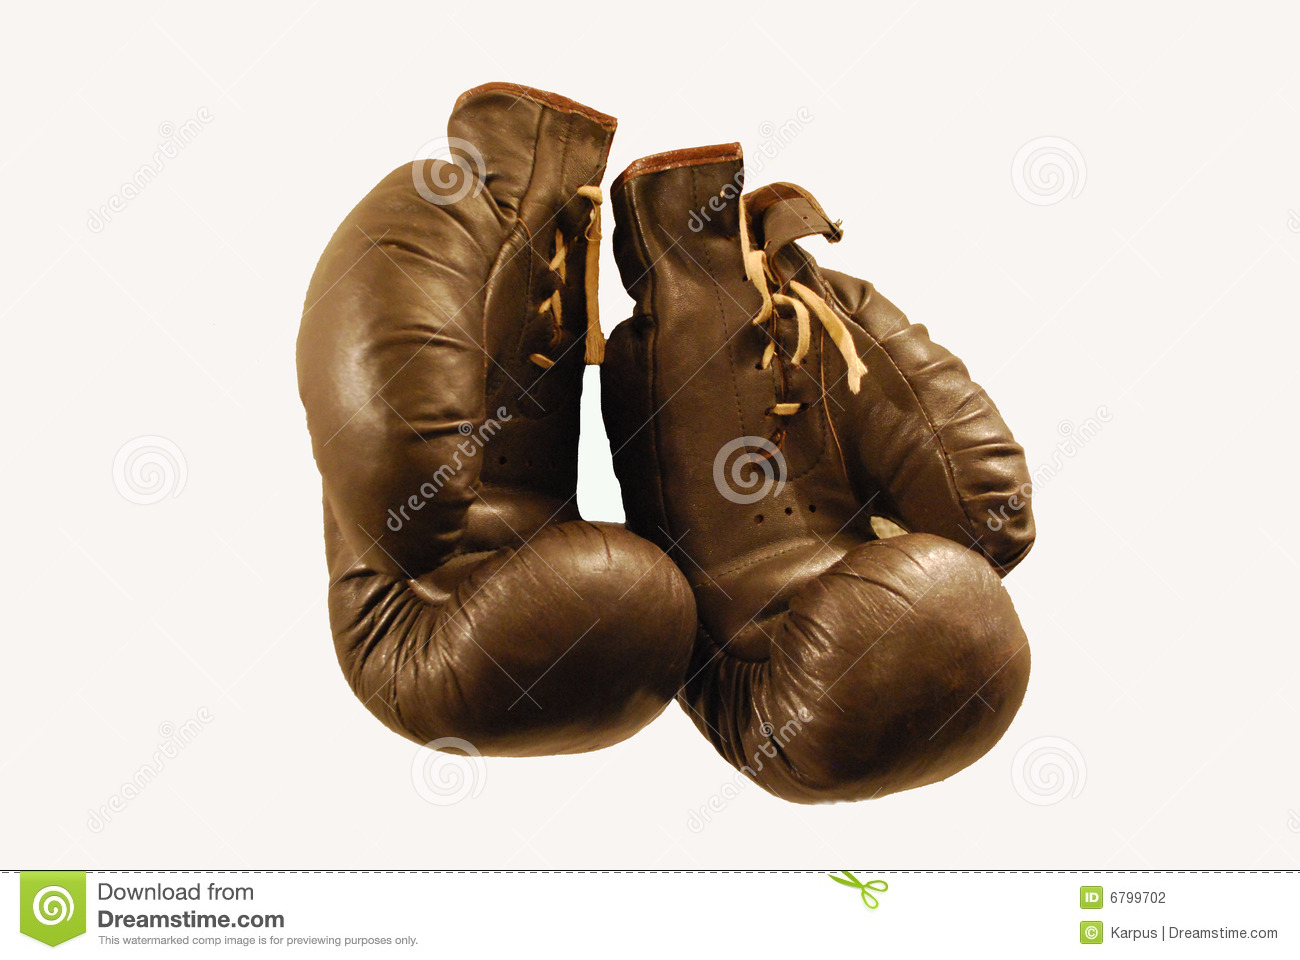 Old-fashioned Boxing Gloves Stock Photo - Image of activity, sport